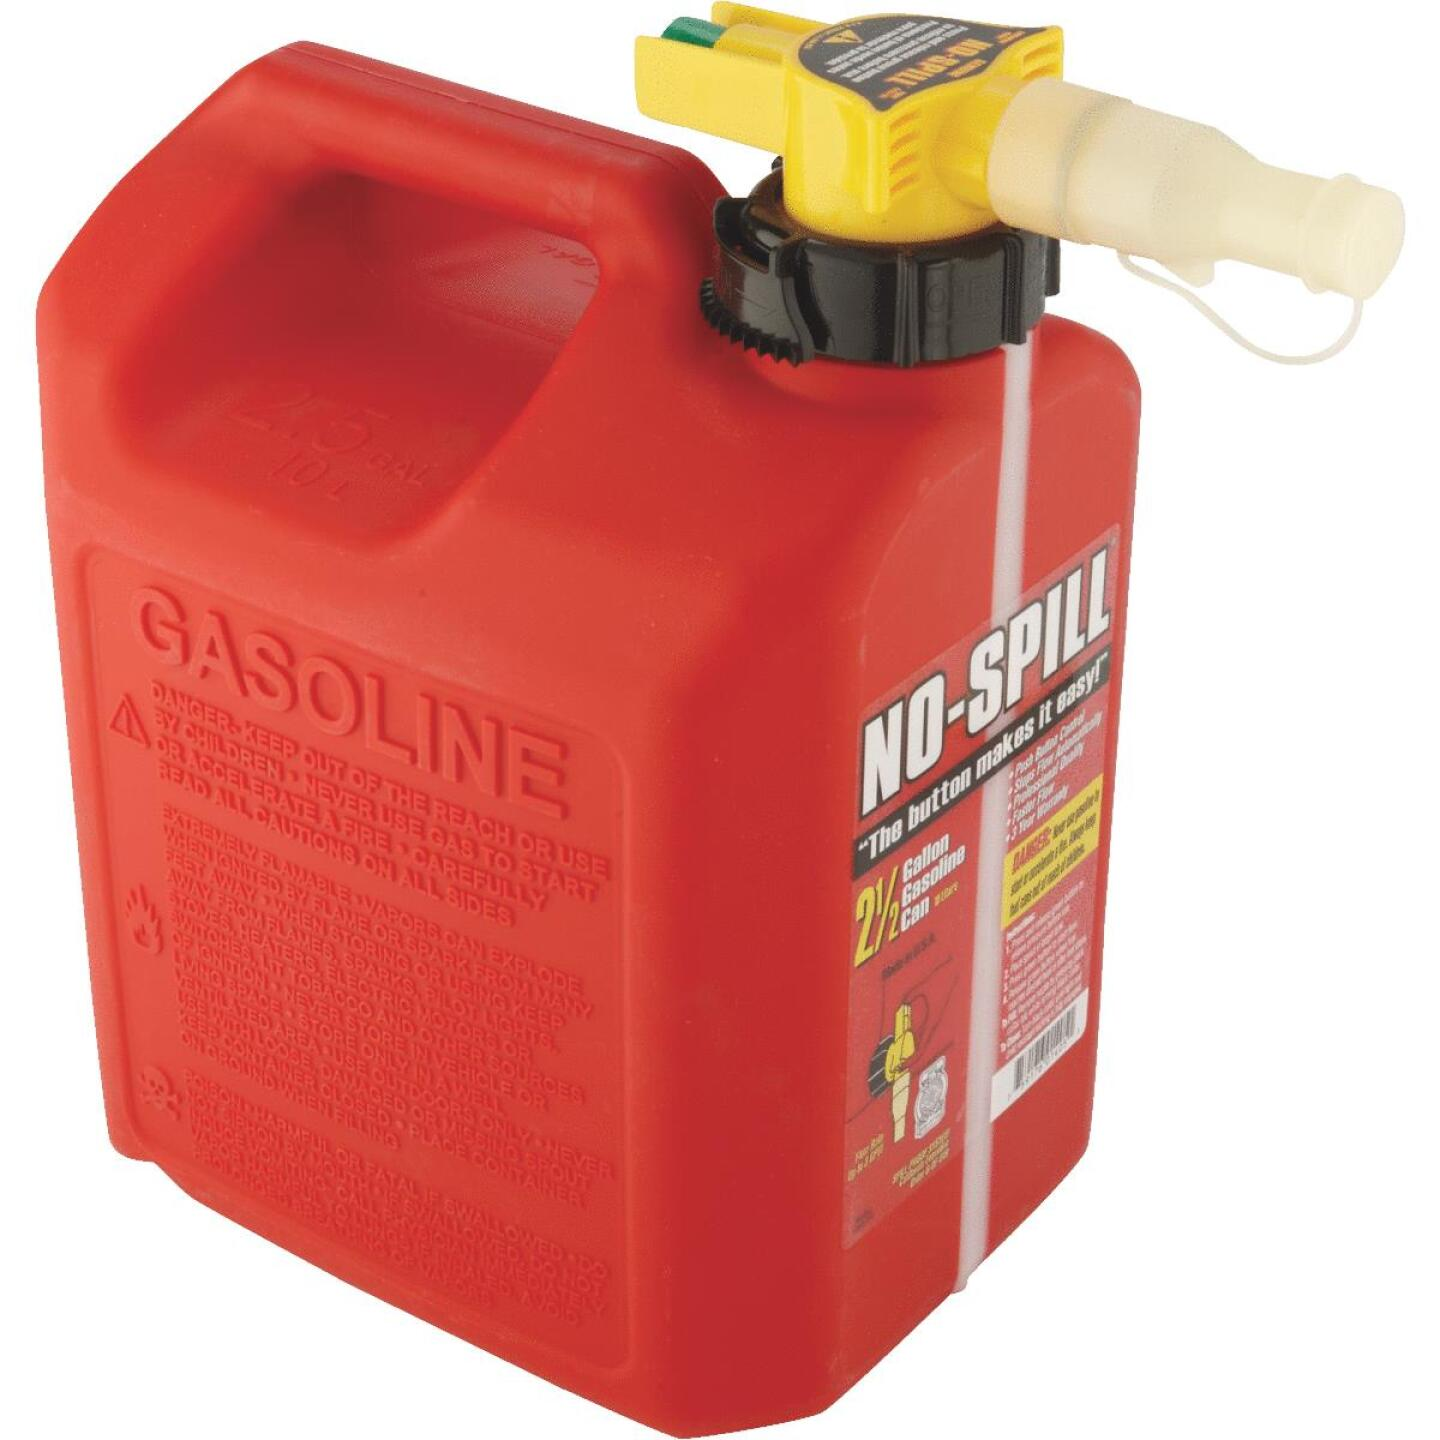 No-Spill 2-1/2 Gal. Plastic Gasoline Fuel Can, Red Image 2